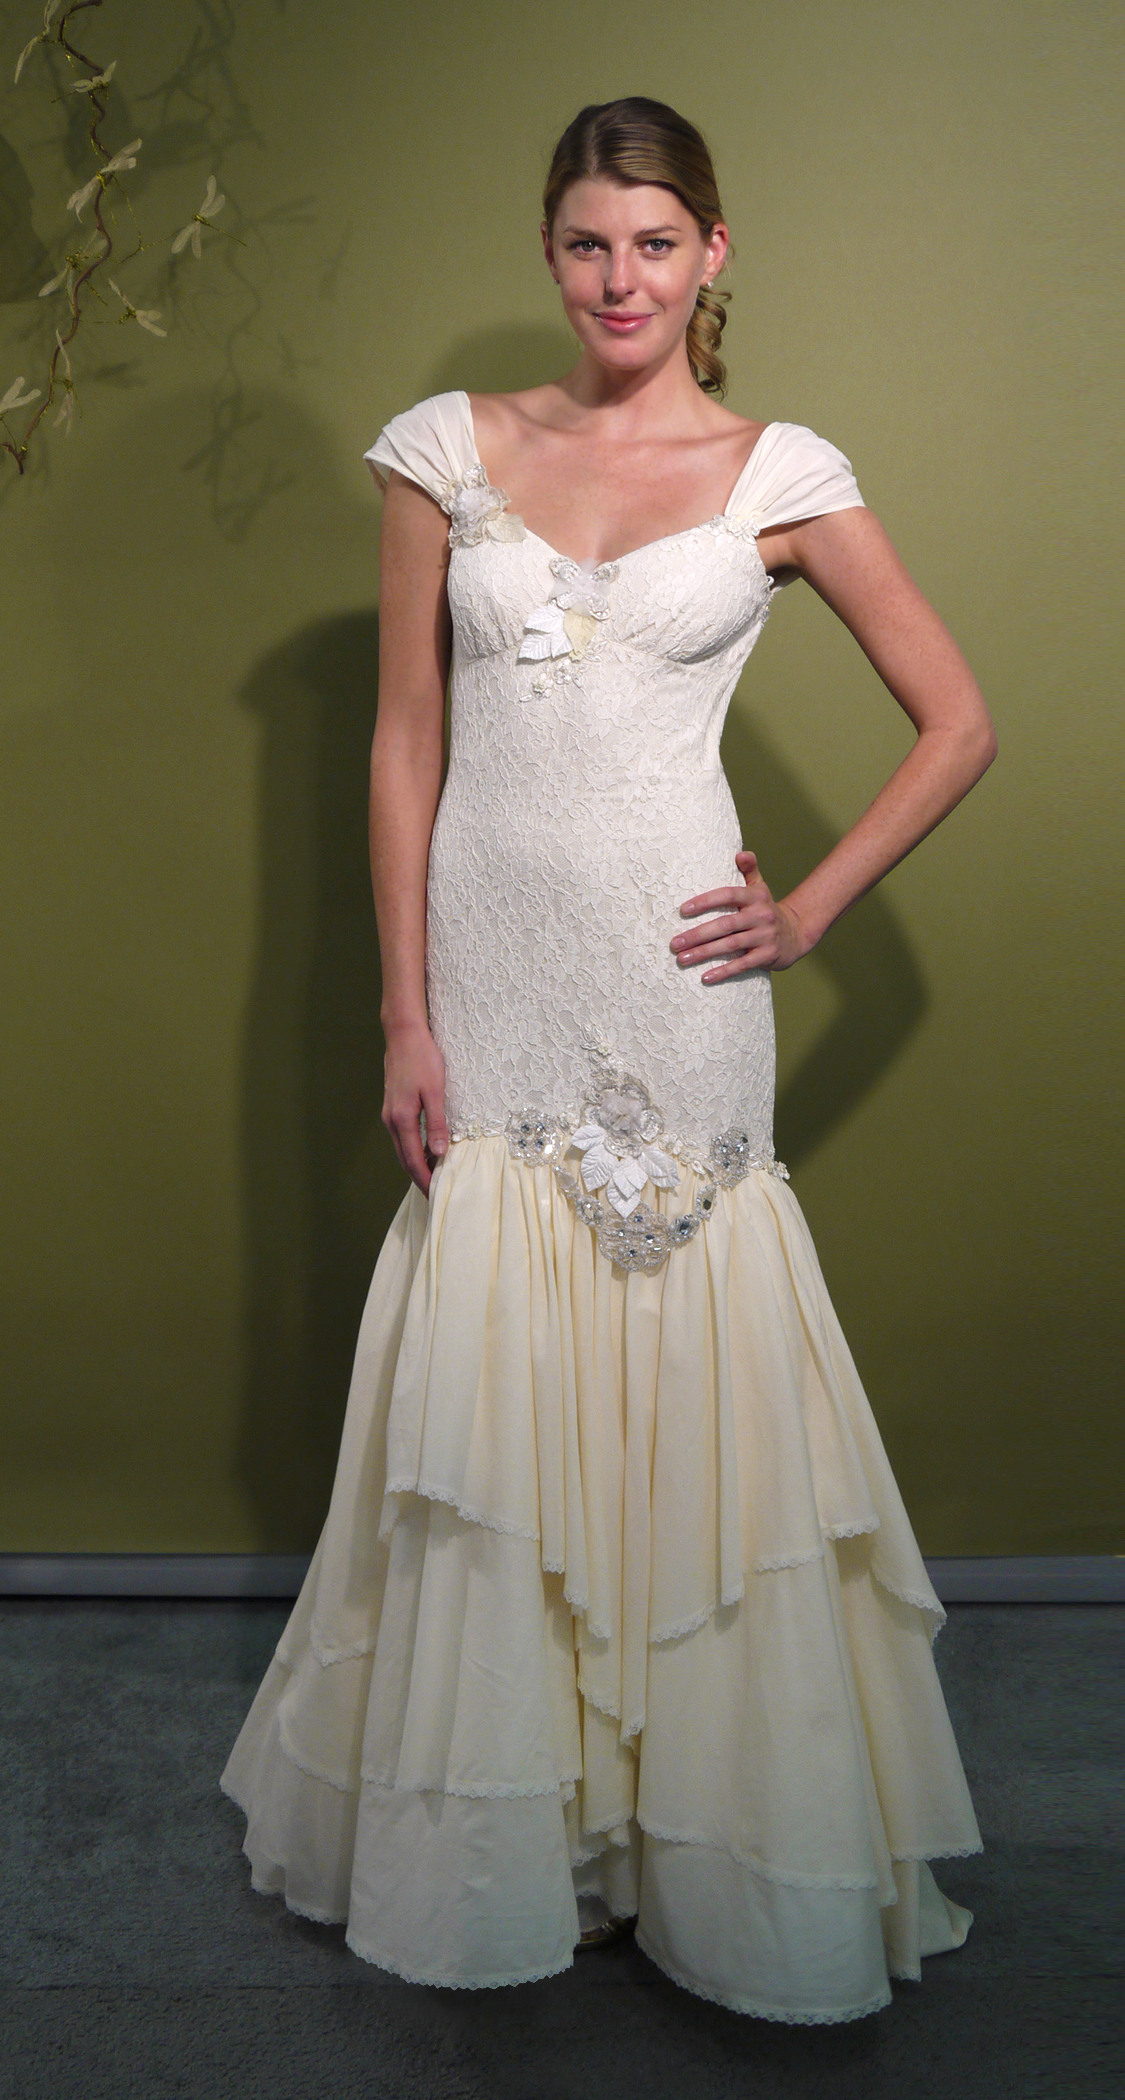 Fall-2011-wedding-dress-emmaline-bridal-gown-claire-pettibone-cap-sleeves-large.original